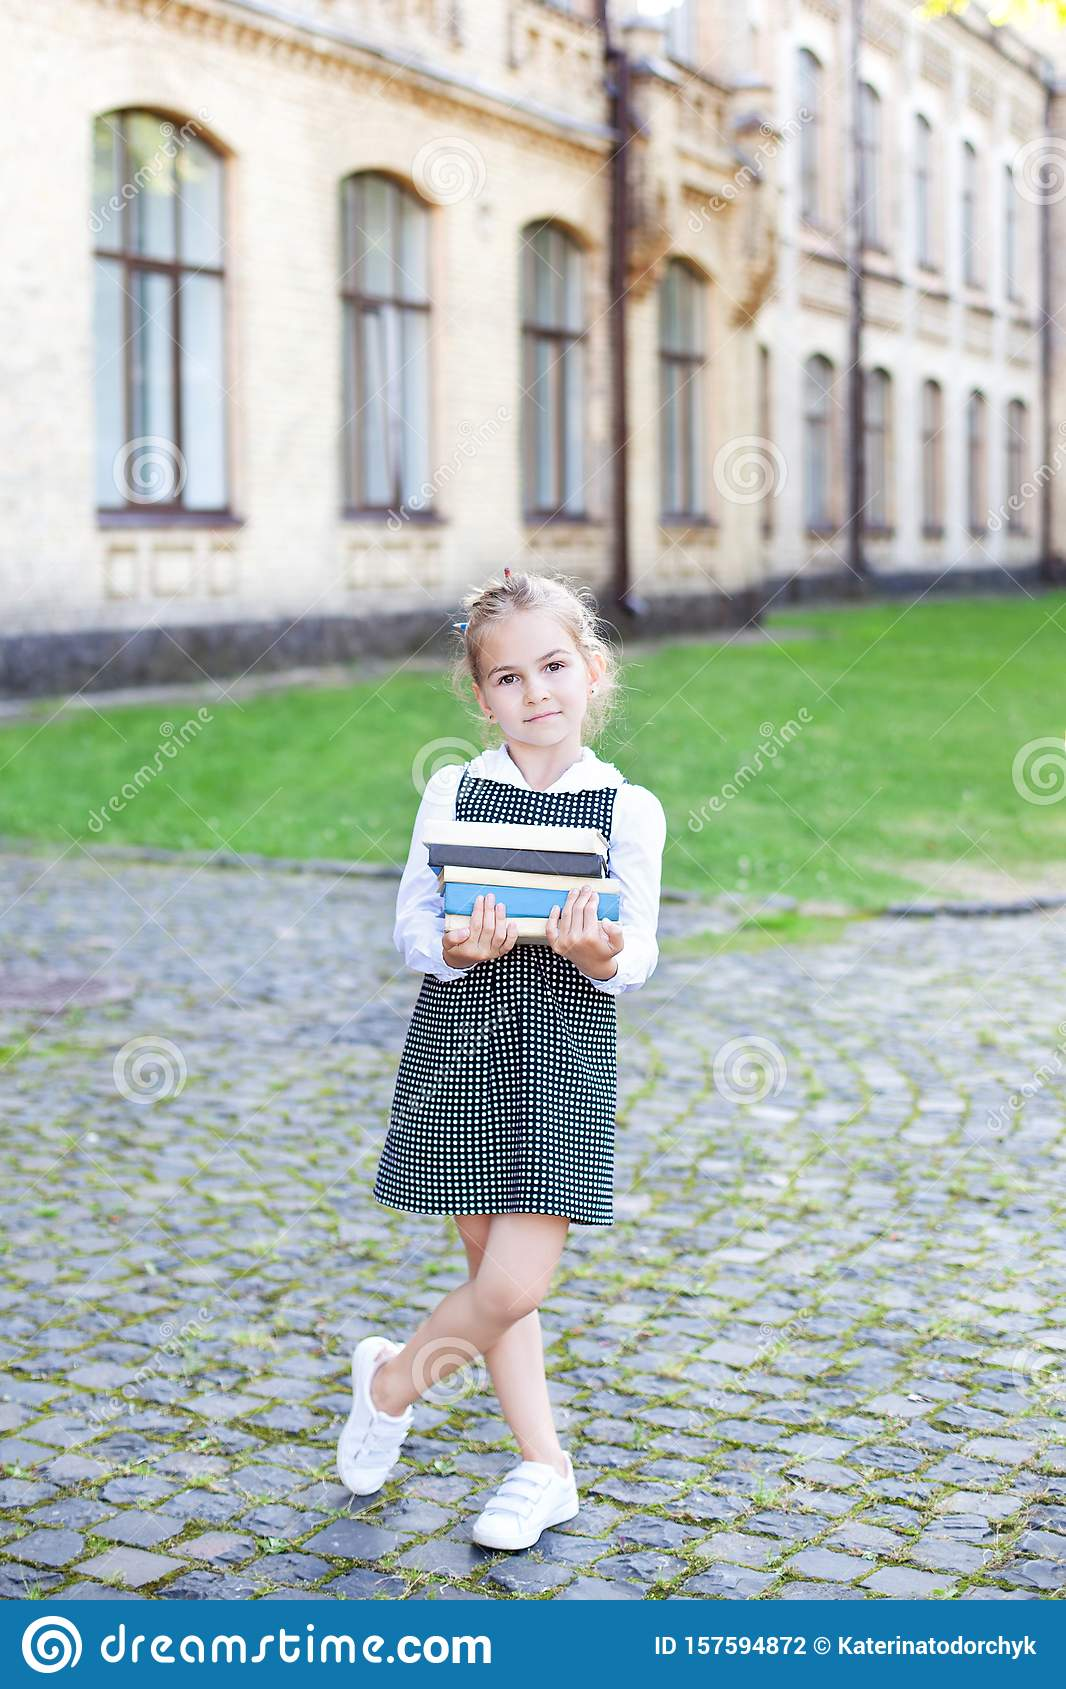 Back to school. Portrait of a schoolgirl with books, textbooks on the background of the school. Education concept. Preschool educa